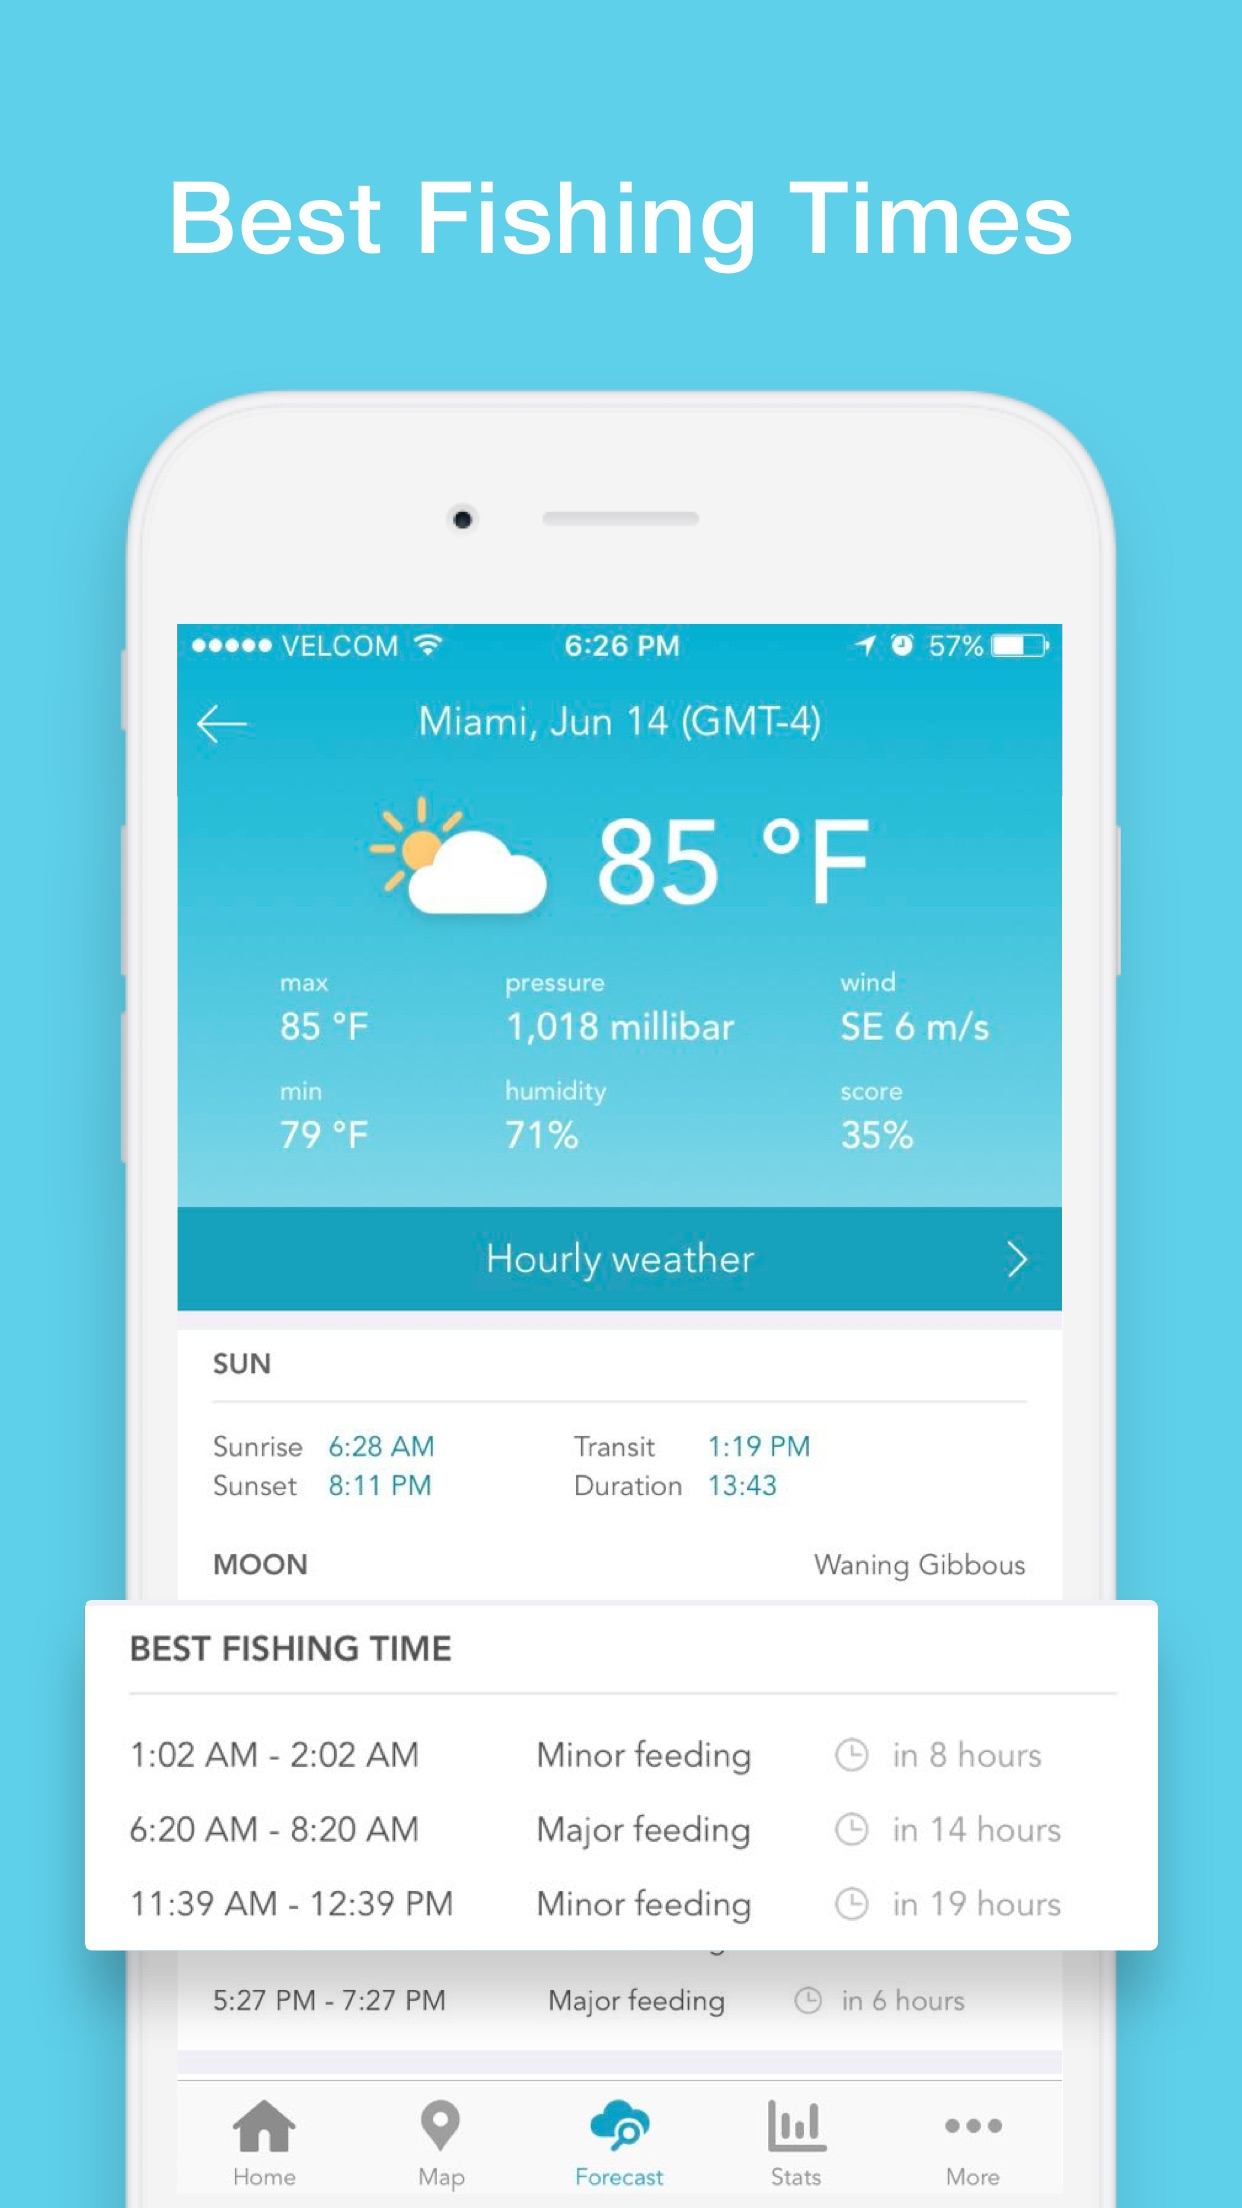 Fishbox - #1 Fishing App Screenshot